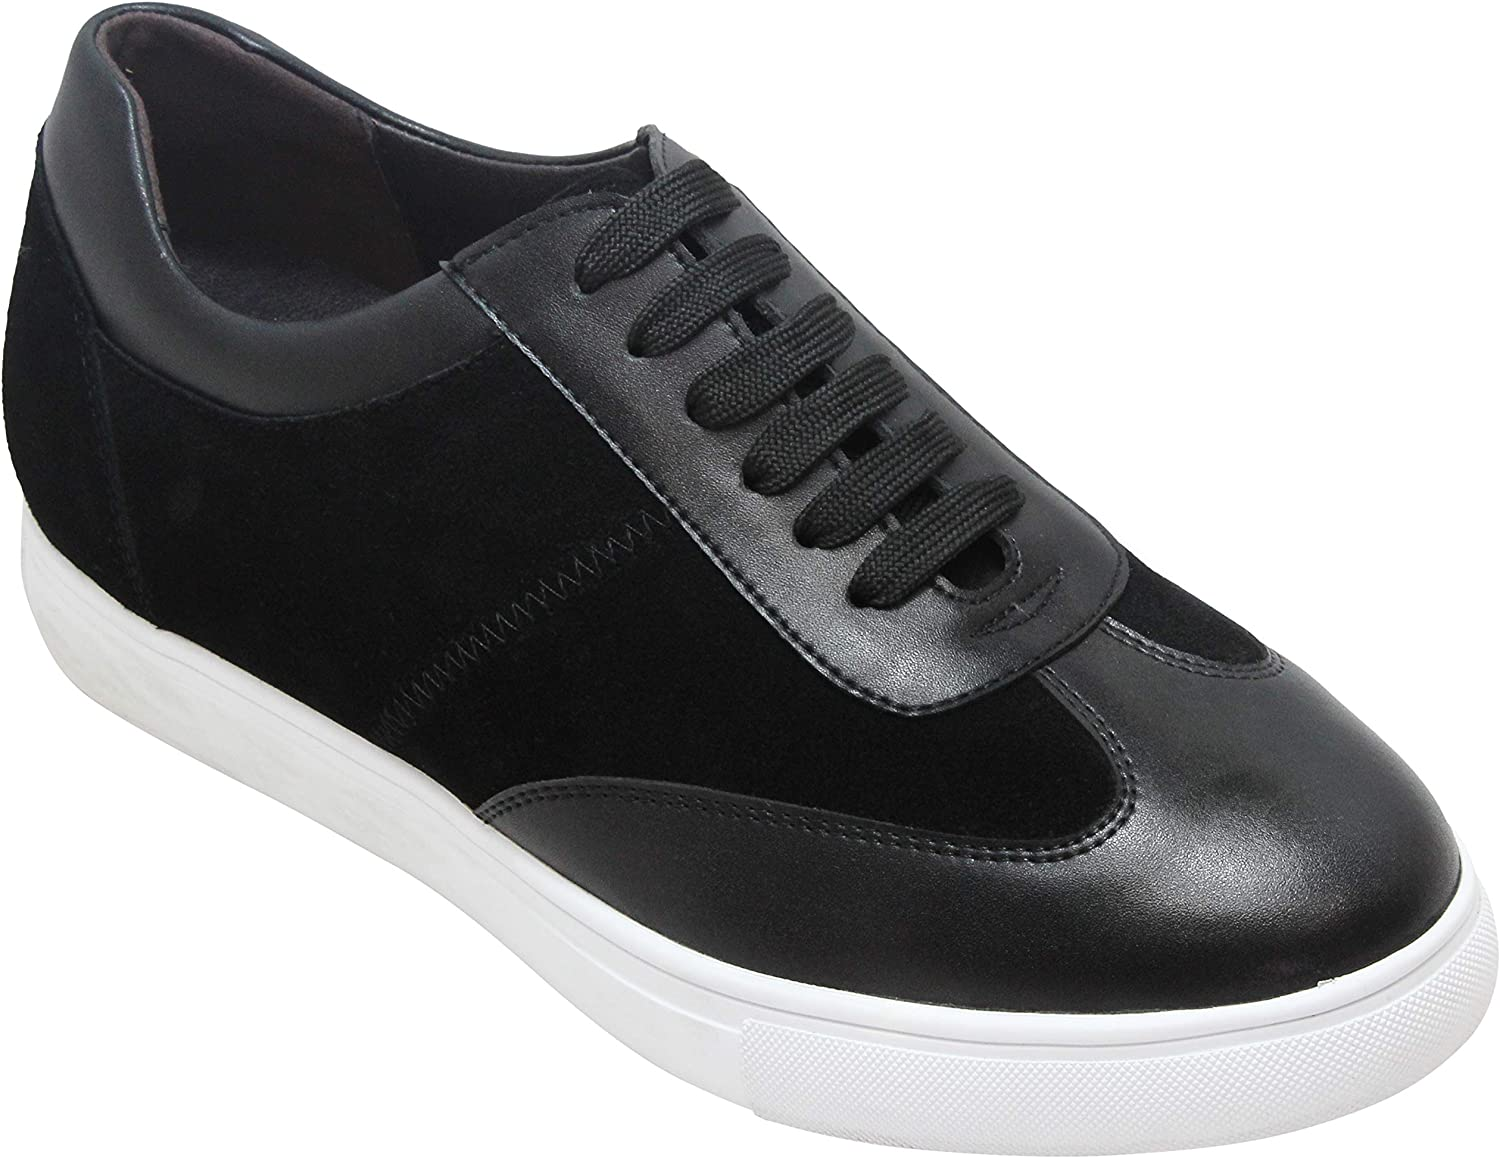 CALTO Men's Invisible Height Increasing Elevator shoes - Black Nubuck Leather Lace-up Lightweight Clasic Casual Sneakers - 2.4 Inches Taller - Y27032